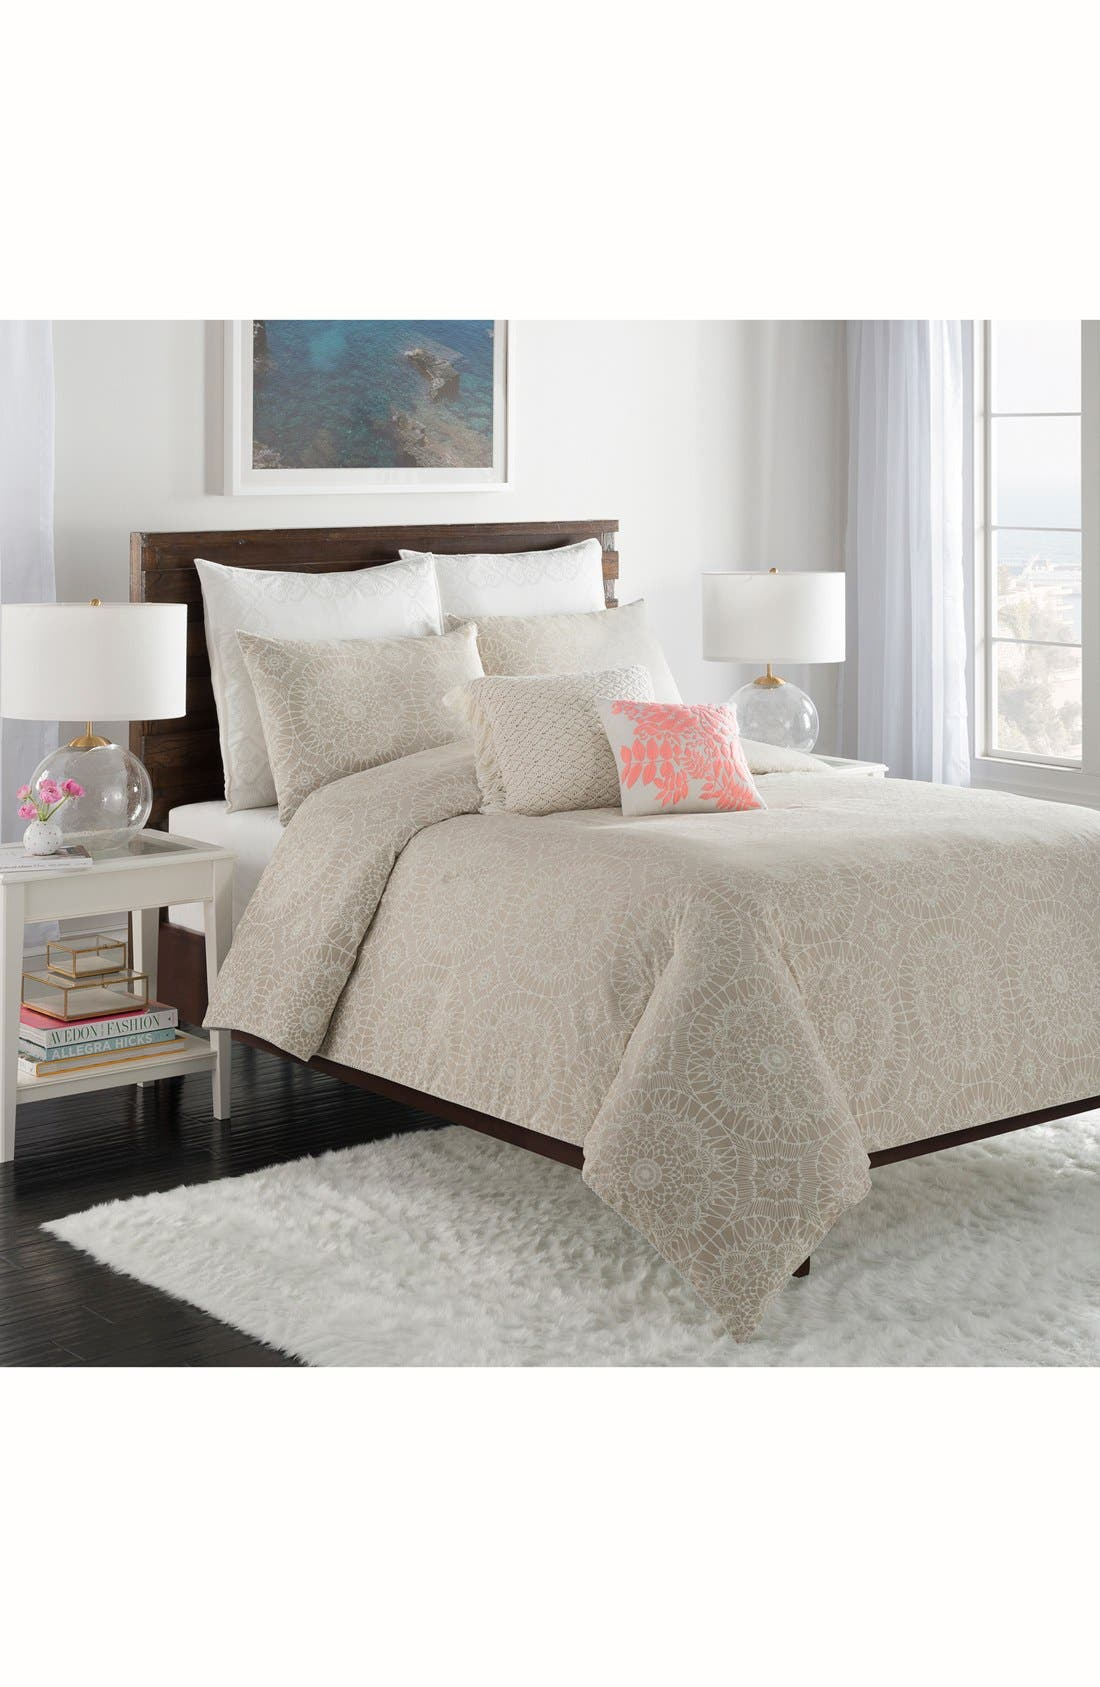 Cupcakes And Cashmere Lace Medallion Duvet Cover Nordstrom